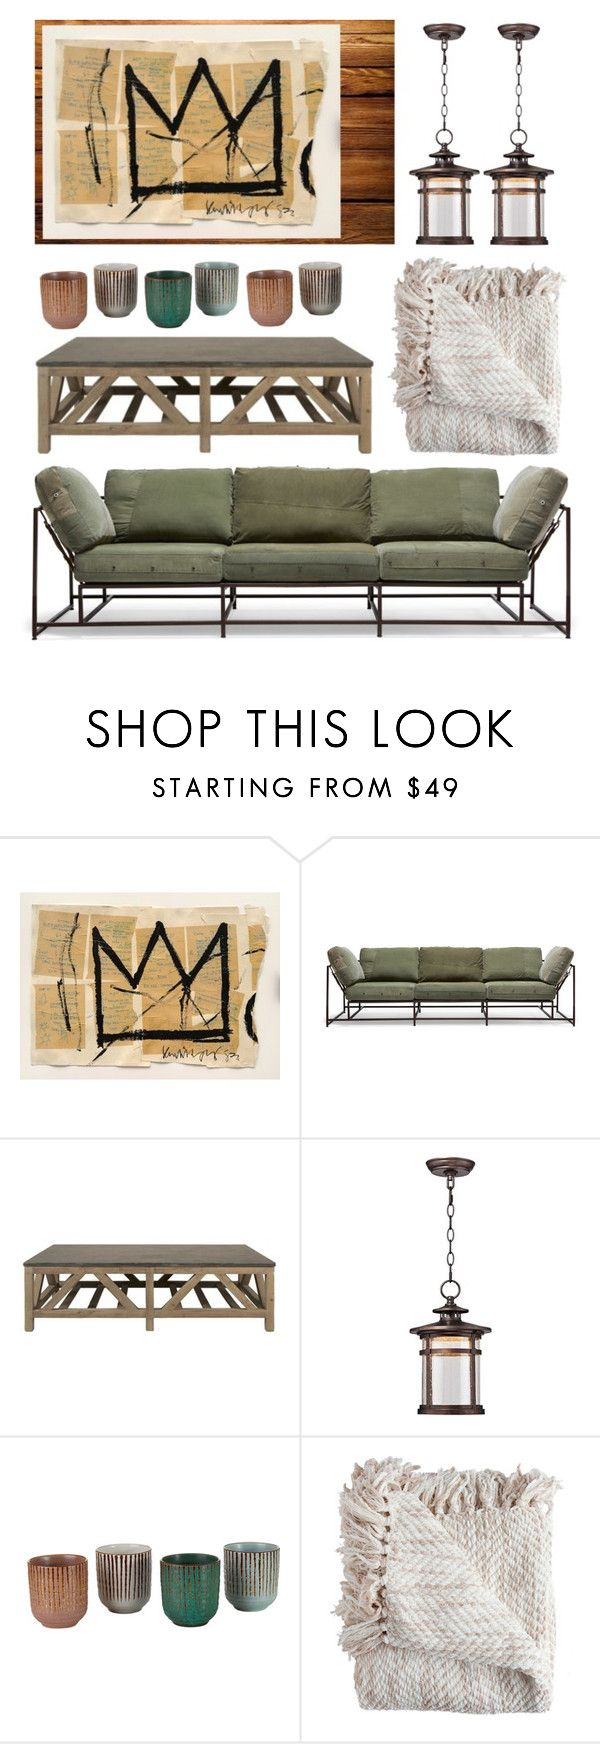 """""""genius basquiat"""" by foundlostme ❤ liked on Polyvore featuring interior, interiors, interior design, home, home decor, interior decorating, Stephen Kenn, Orient Express Furniture, Franklin Iron Works and Pols Potten"""